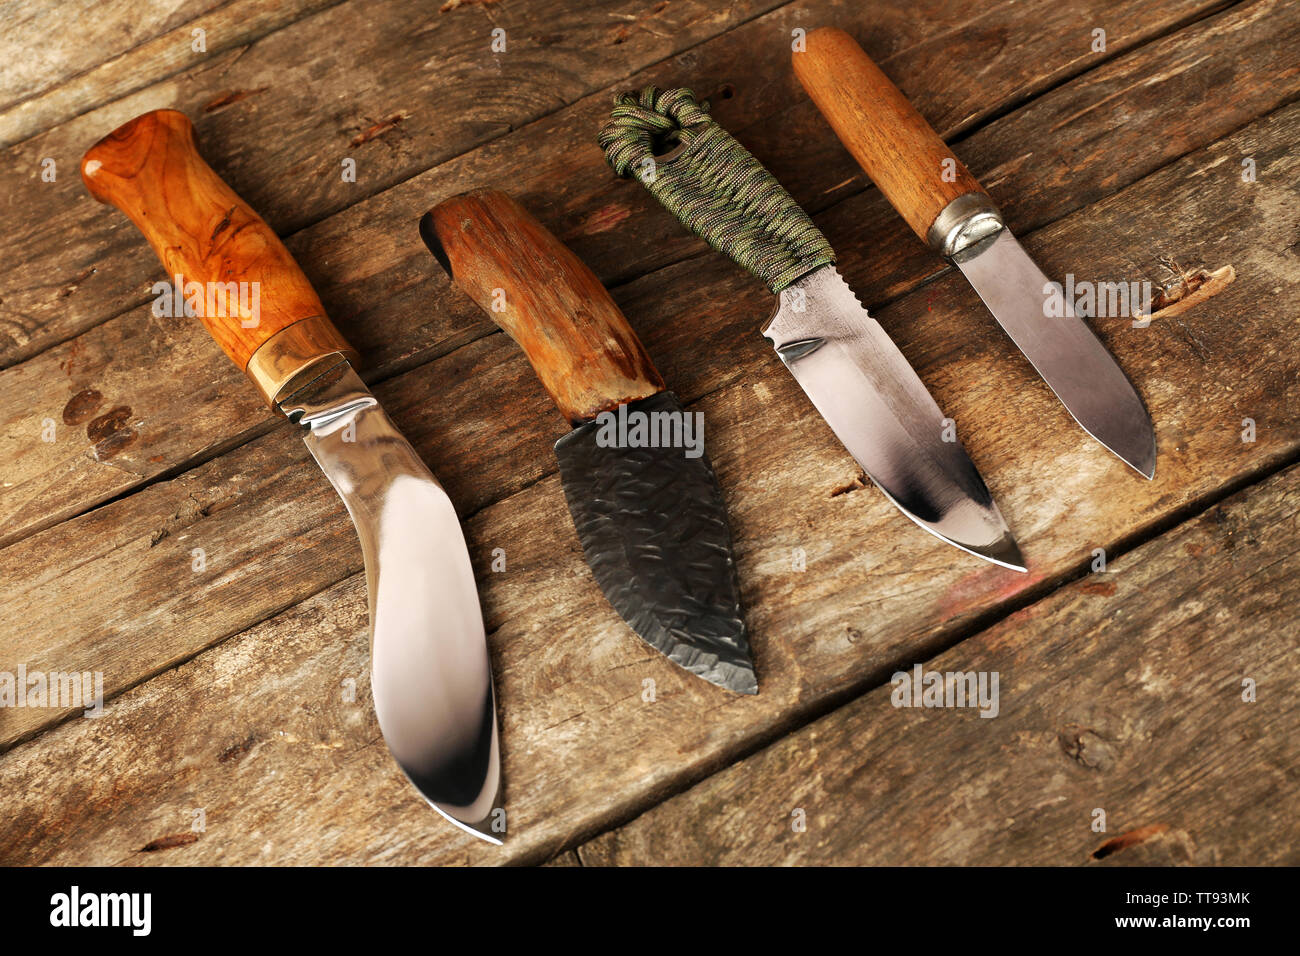 Hunting knives on wooden background - Stock Image